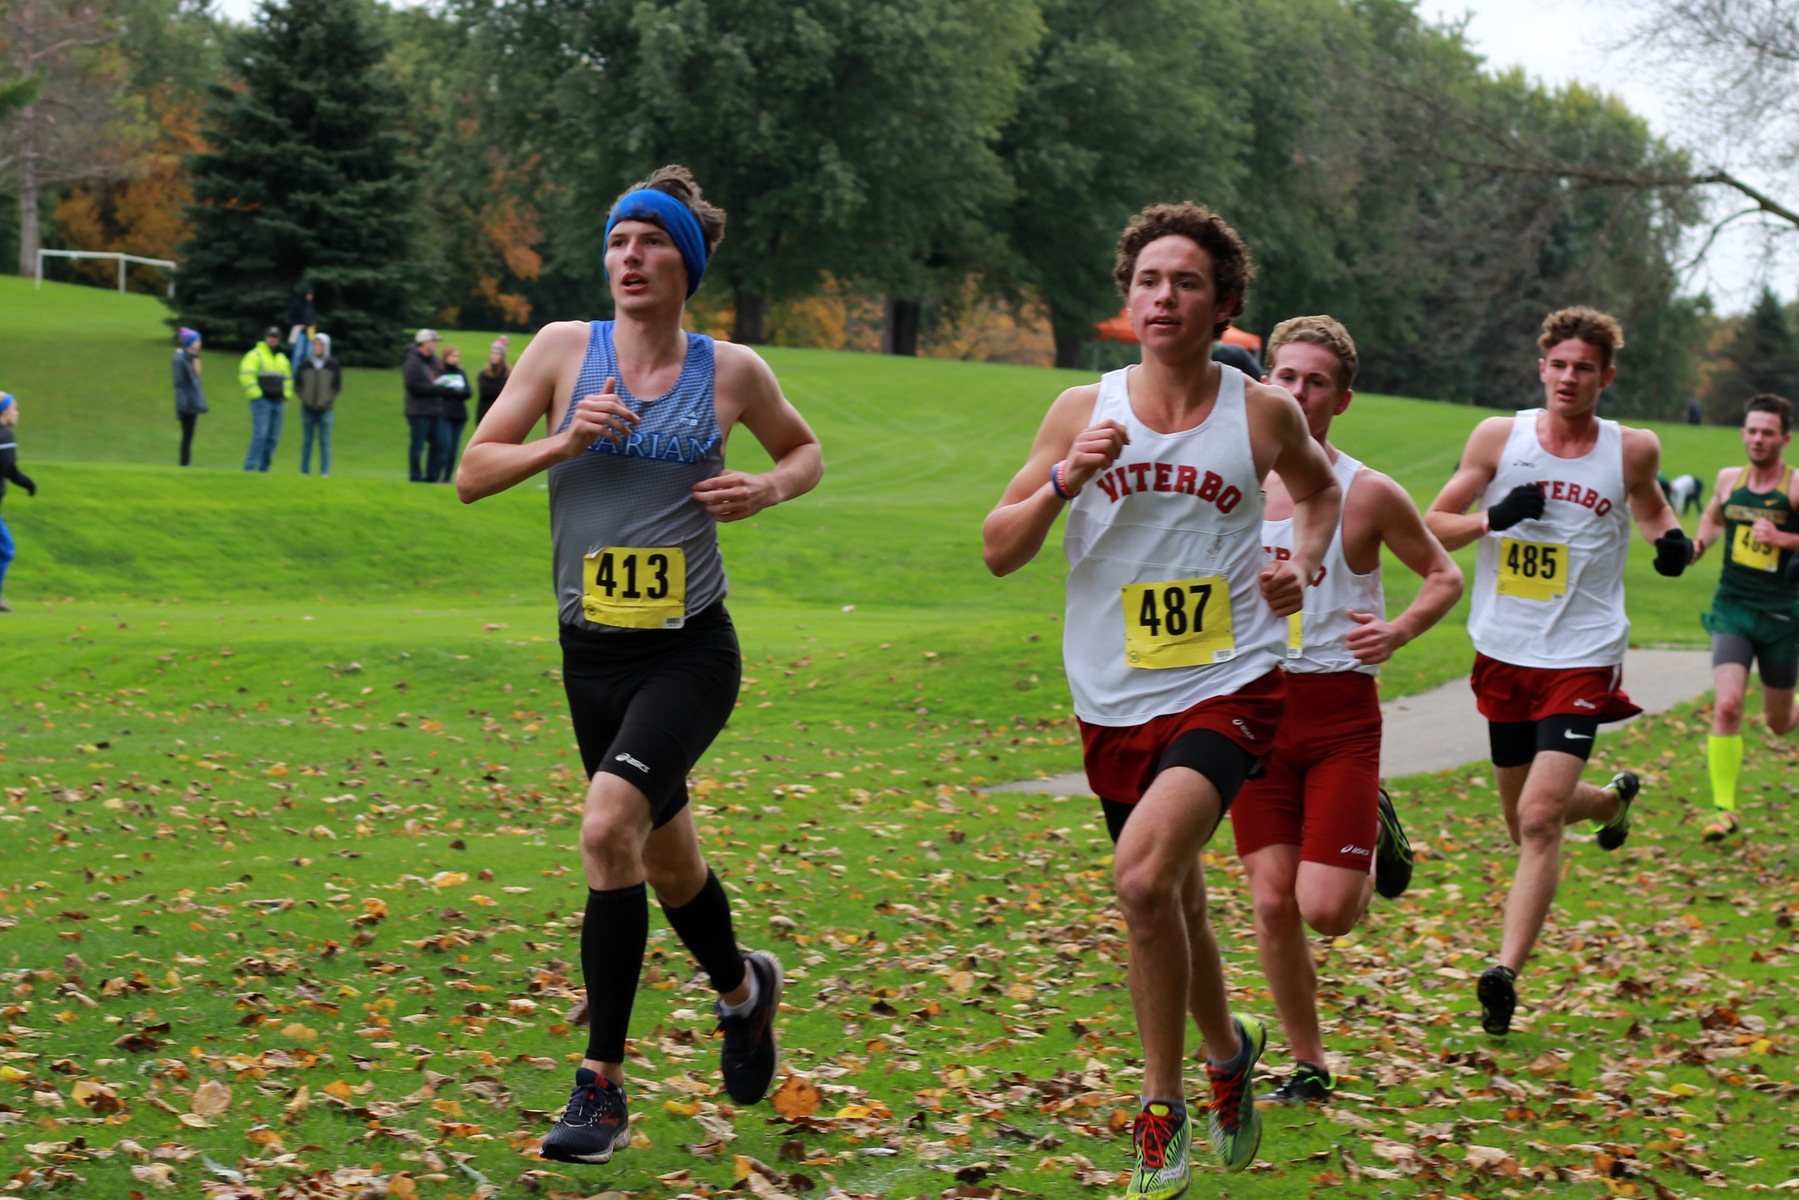 Jacob Leiden leads the pack.